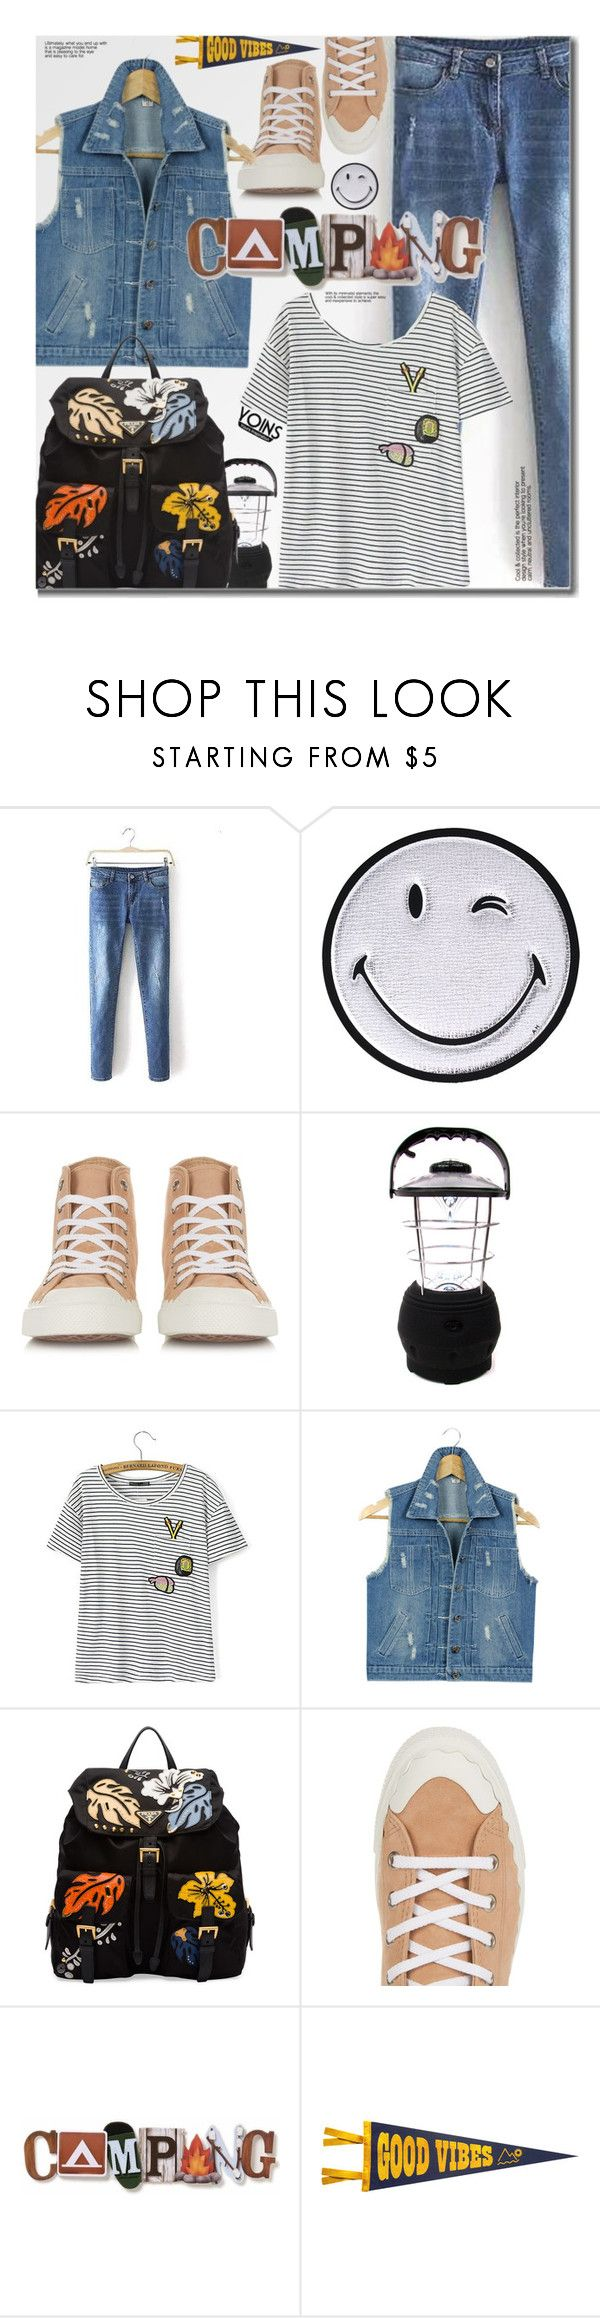 """Yoins Summer Camp (casual)"" by beebeely-look ❤ liked on Polyvore featuring Anya Hindmarch, Chloé, Prada, Dot & Bo, Denimondenim, summercamp, stripedshirt, yoins and yoinscollection"